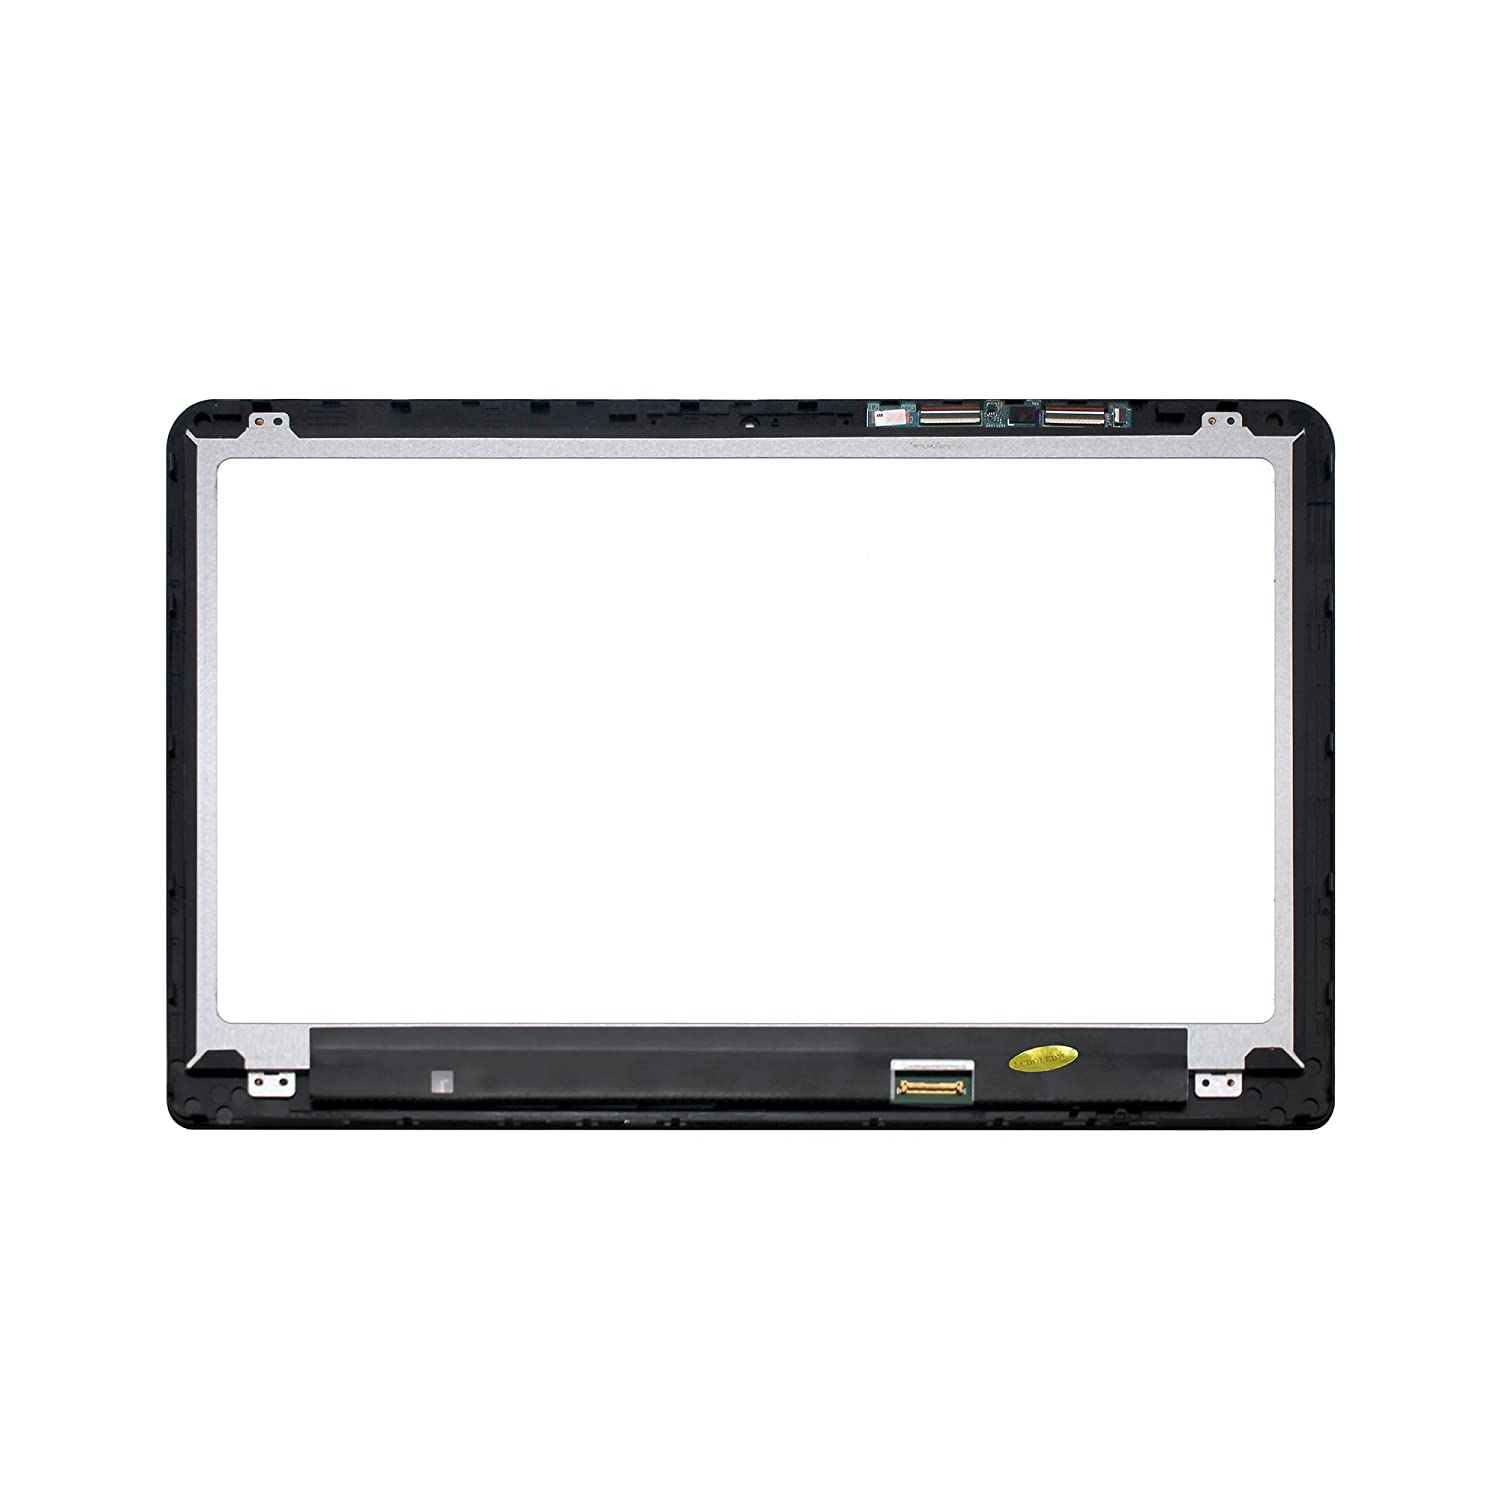 LCDOLED 15.6 inch Replacement Touch Screen Digitizer Front Glass Panel Bezel for HP Envy X360 15-w117cl 15-w150nw 15-w151nw 15-w152nw with Touch Control Board